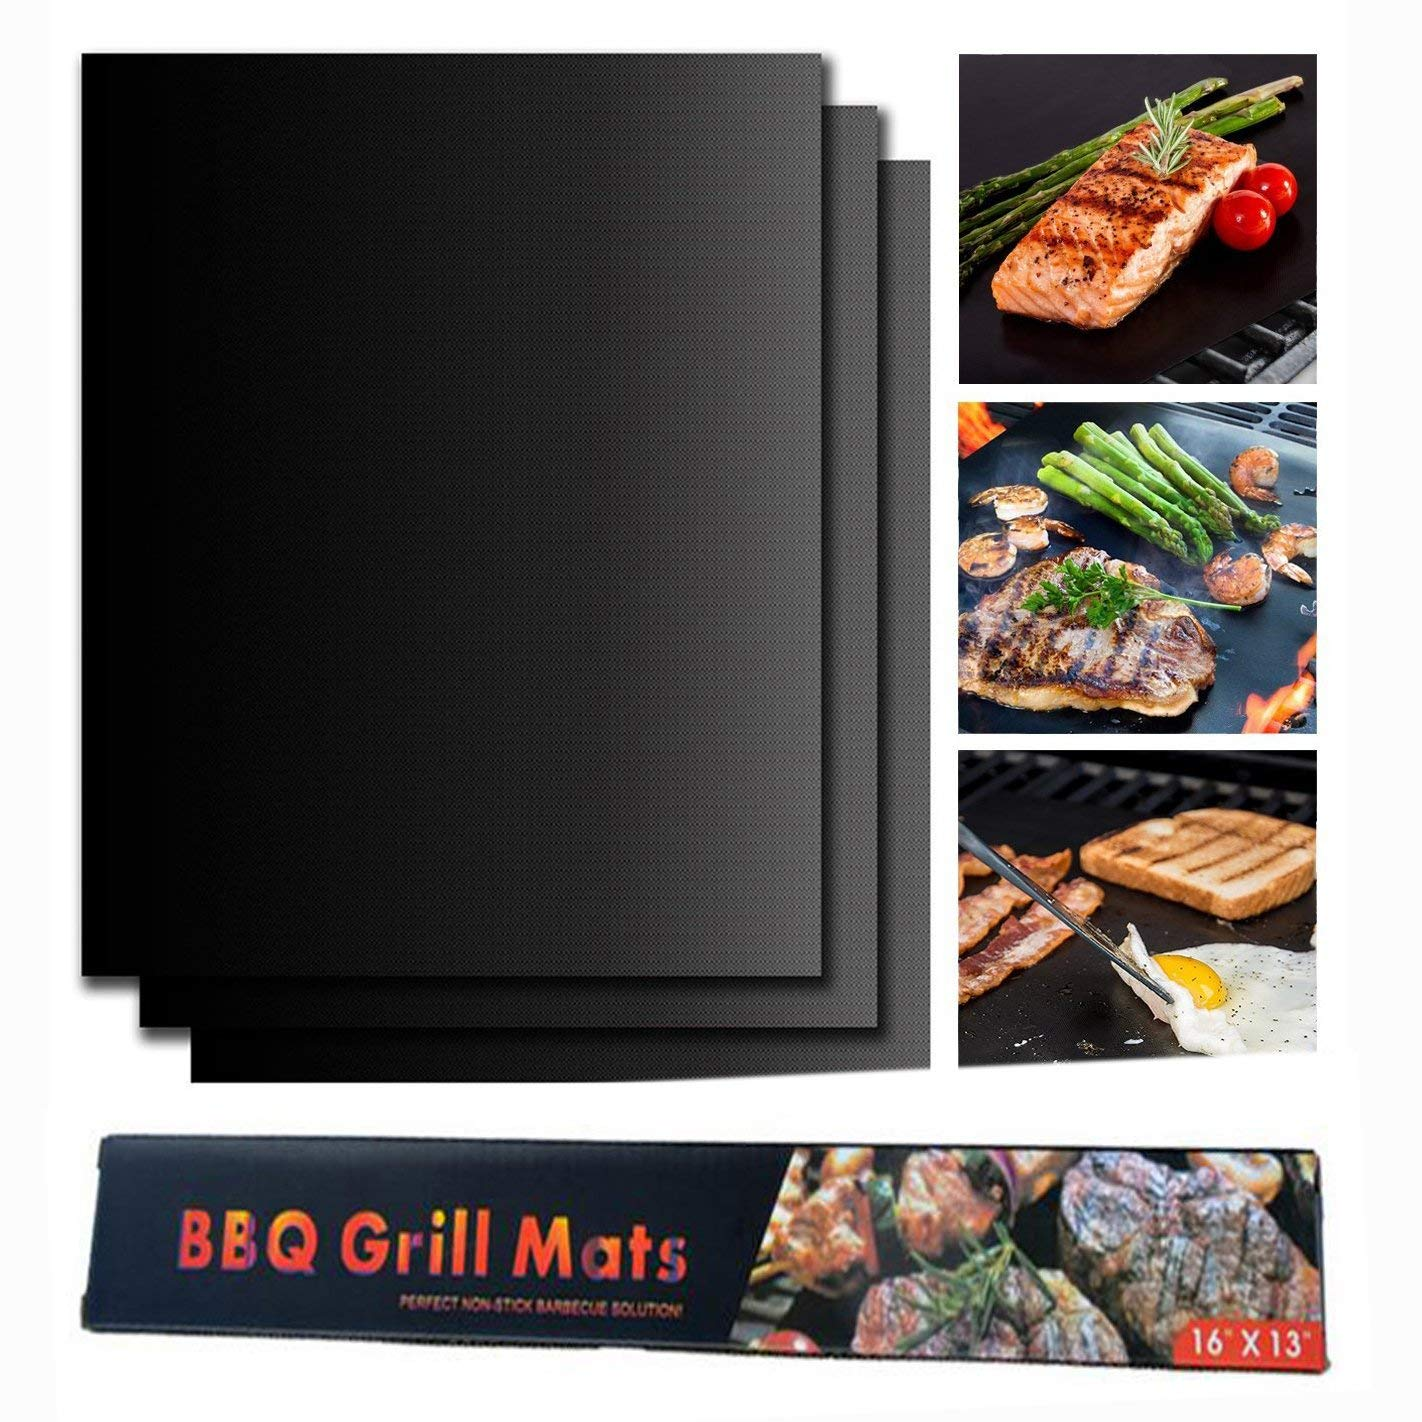 Kuke bbq grill mat (Set of 3) Non-Stick grilling mat for Gas, Charcoal, Electric Grill Sheet black copper grill mats (black)